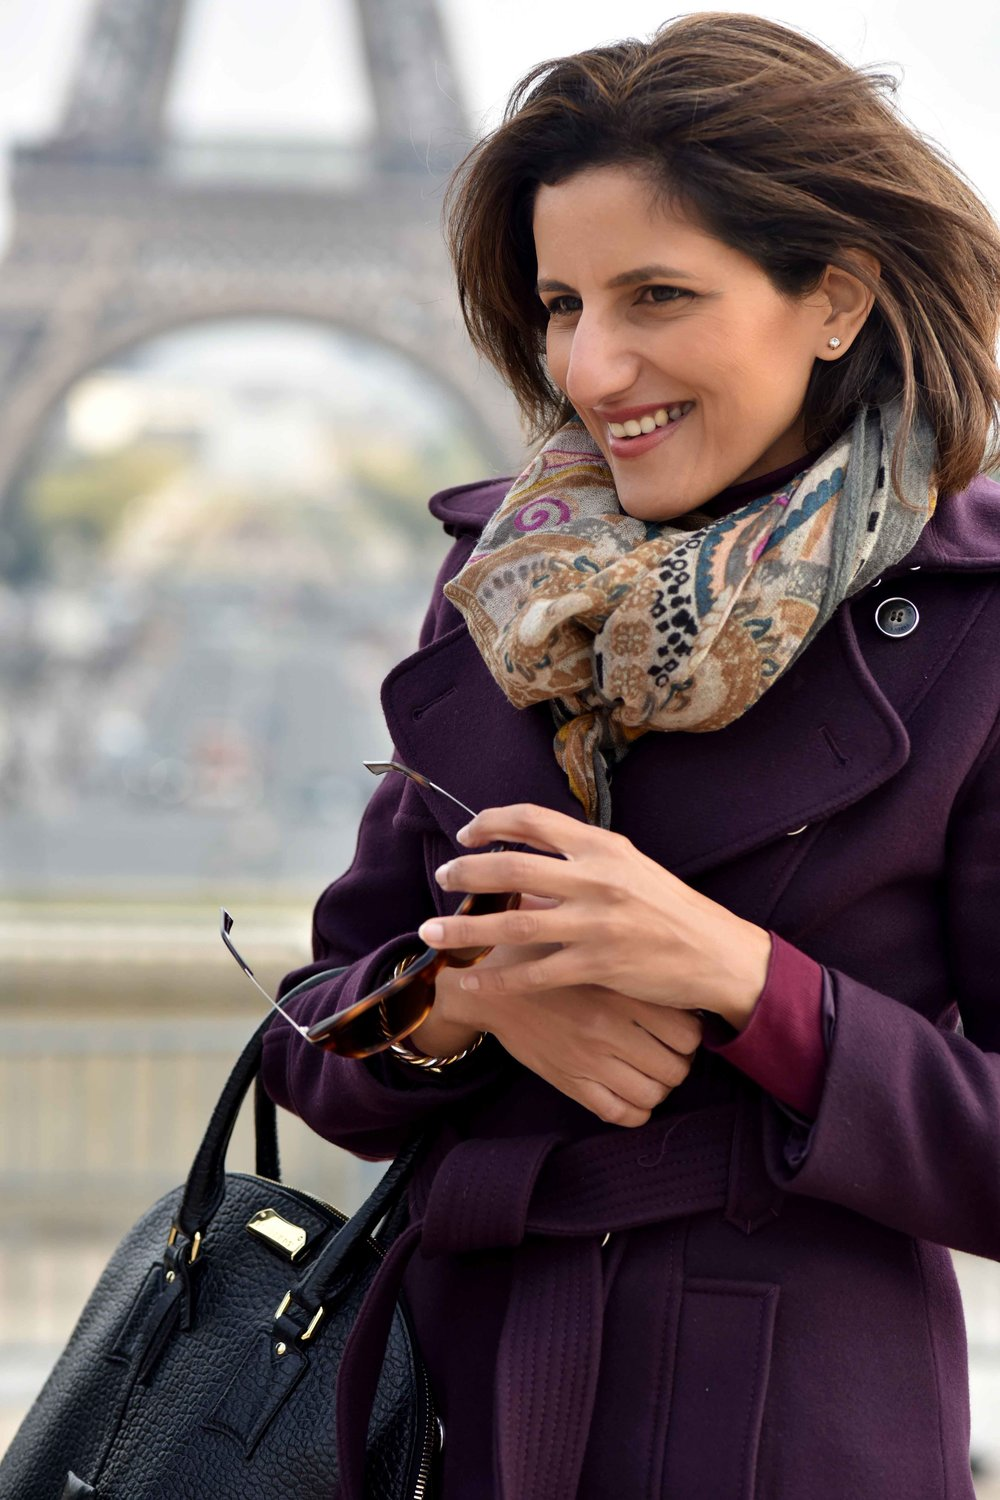 Karen Millen fall winter coat, Burberry bag, Gucci sunglasses, Eiffel Tower, Paris. Image©sourcingstyle.com